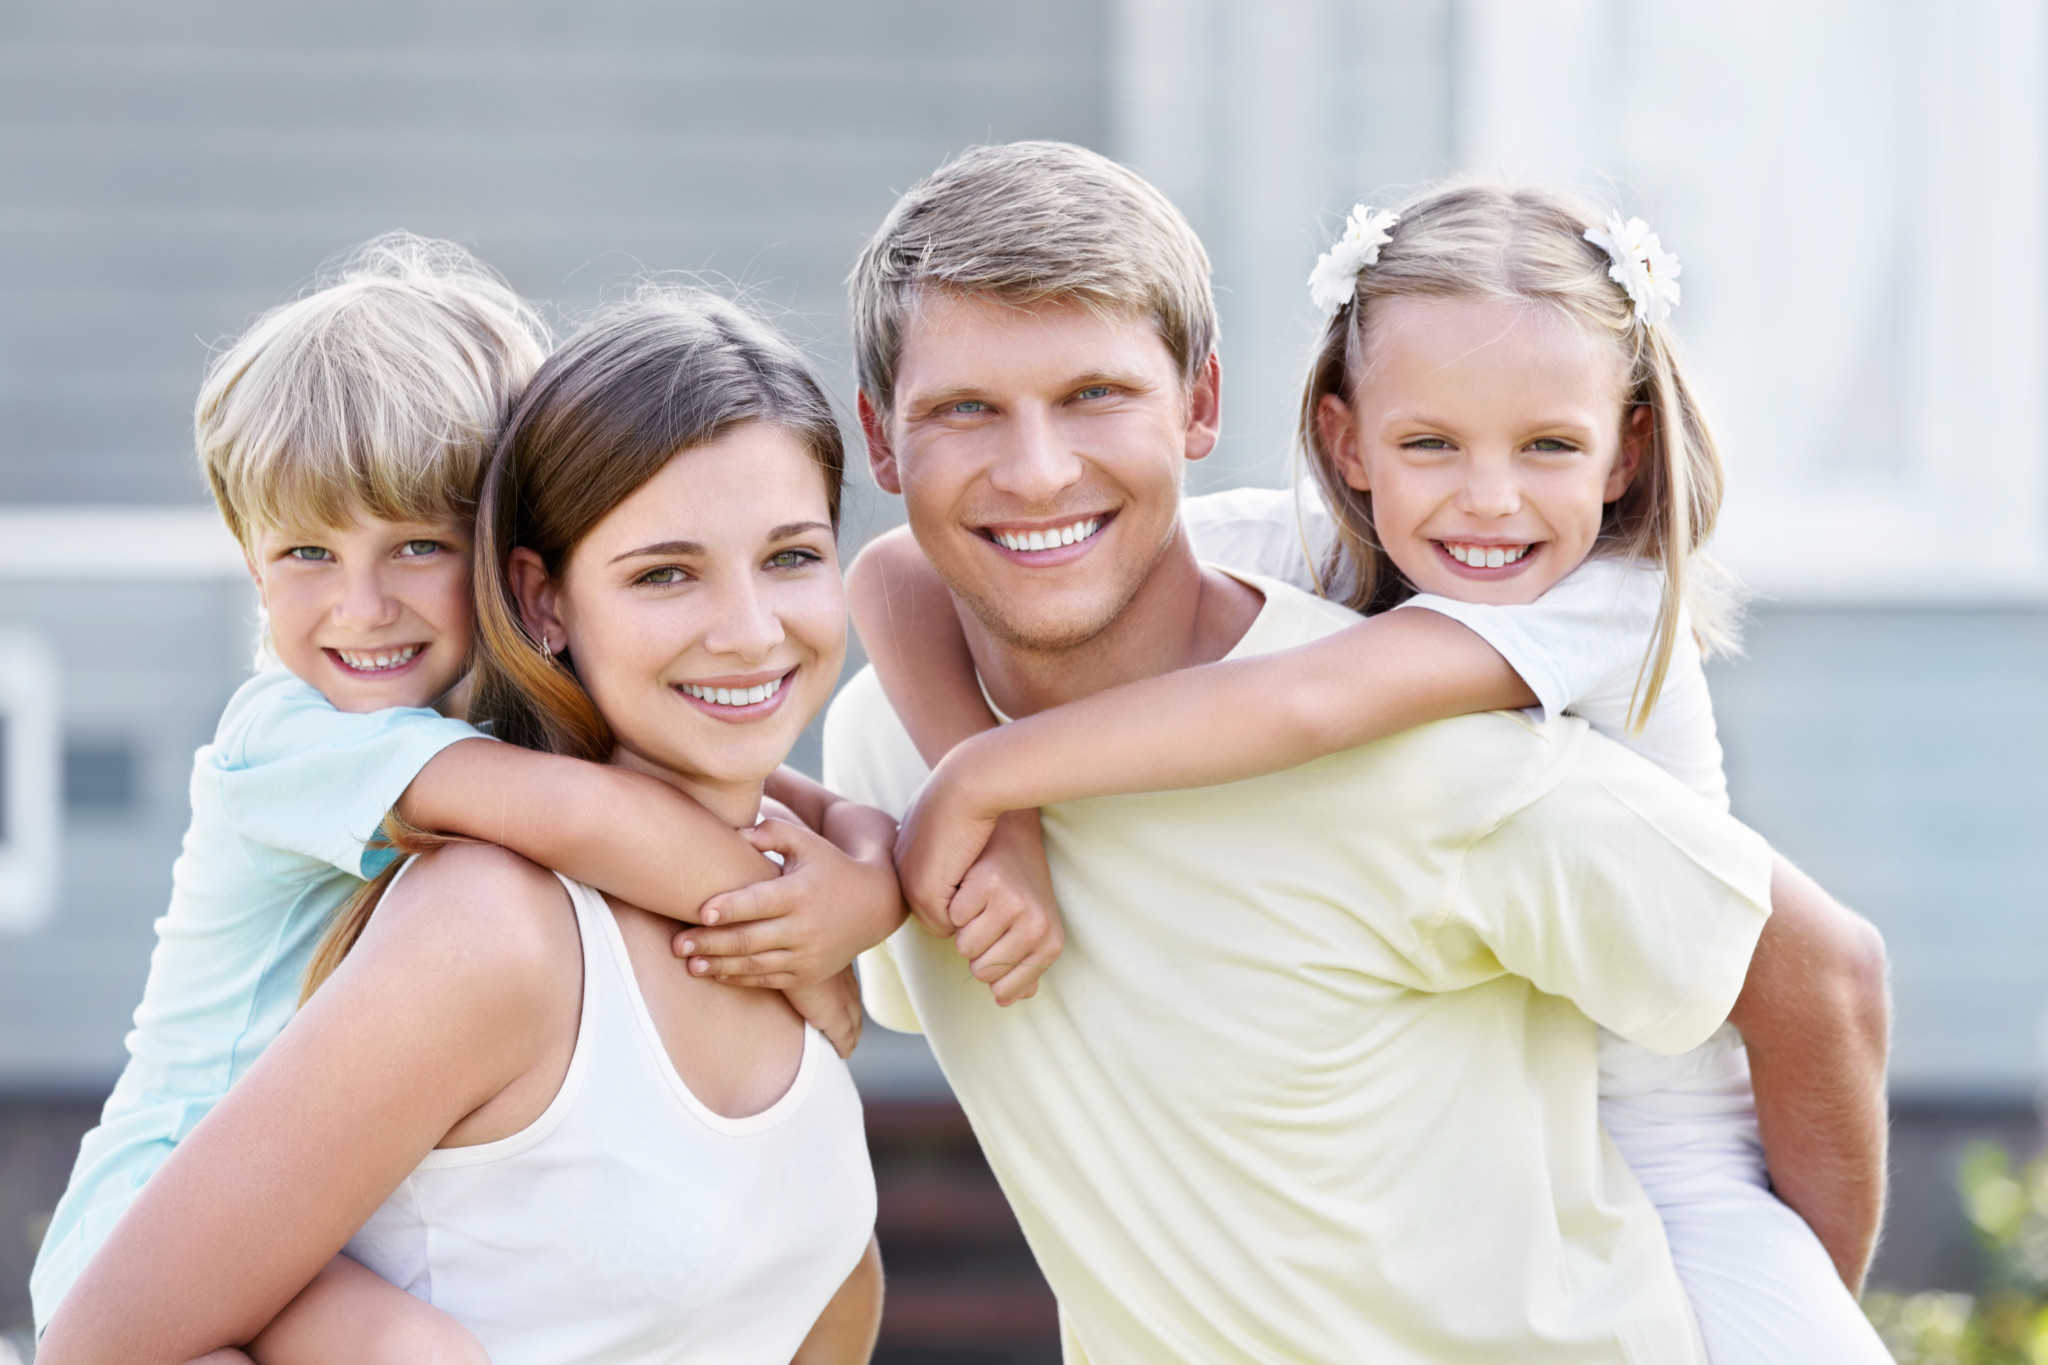 Local Dental Practice in Harrisburg, PA | Painless Family